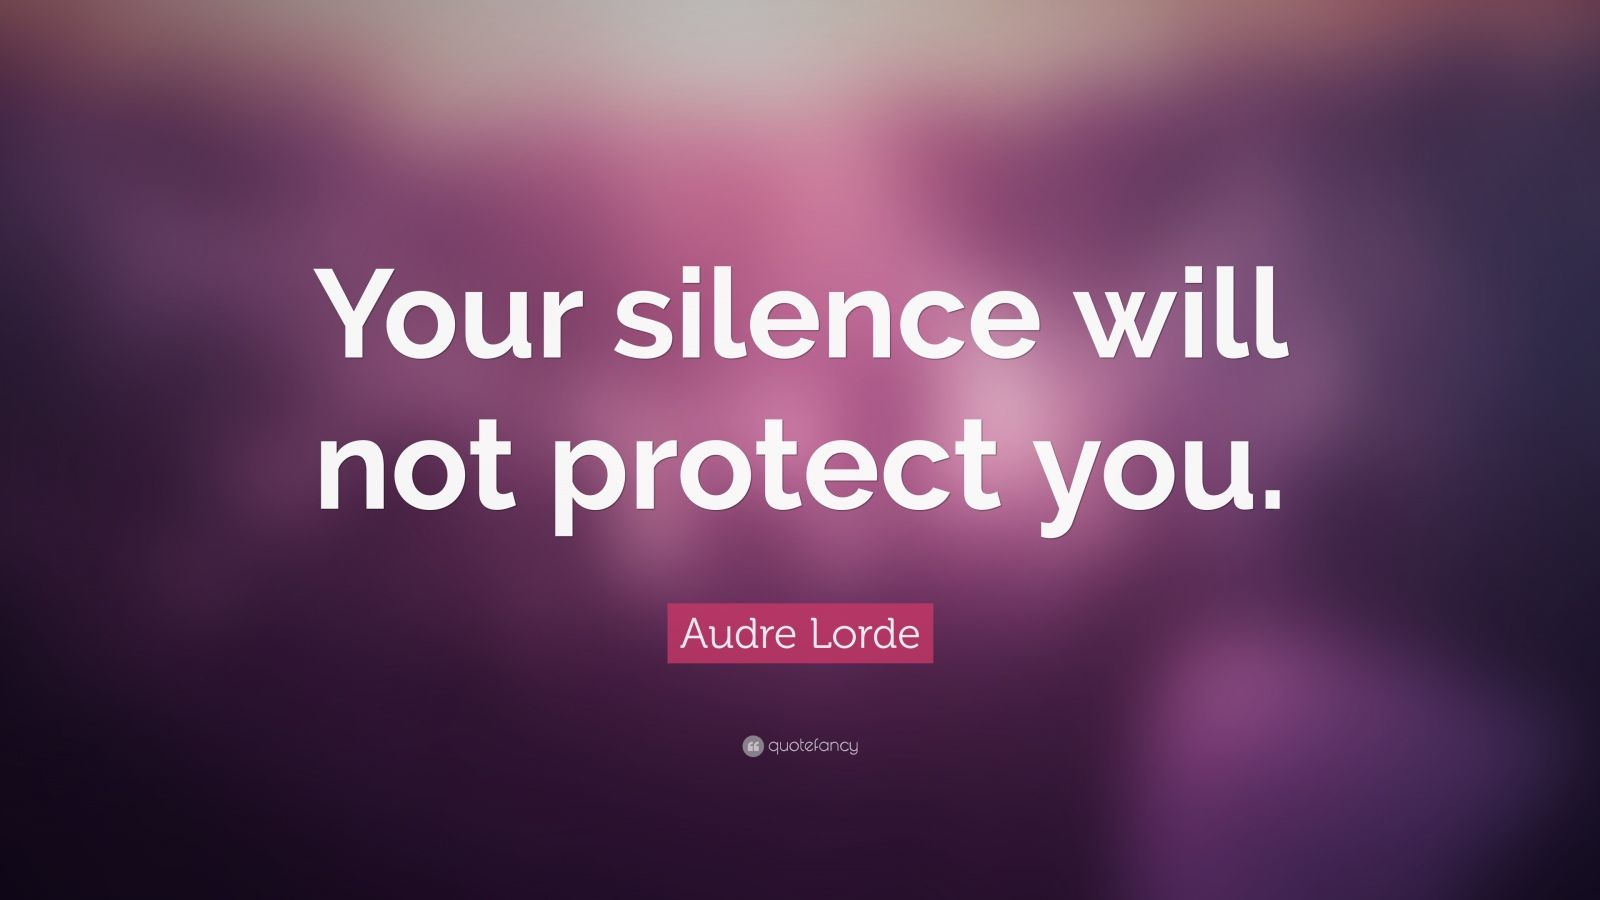 Your Silence Will Not Protect You! – The Writing of Audre Lorde